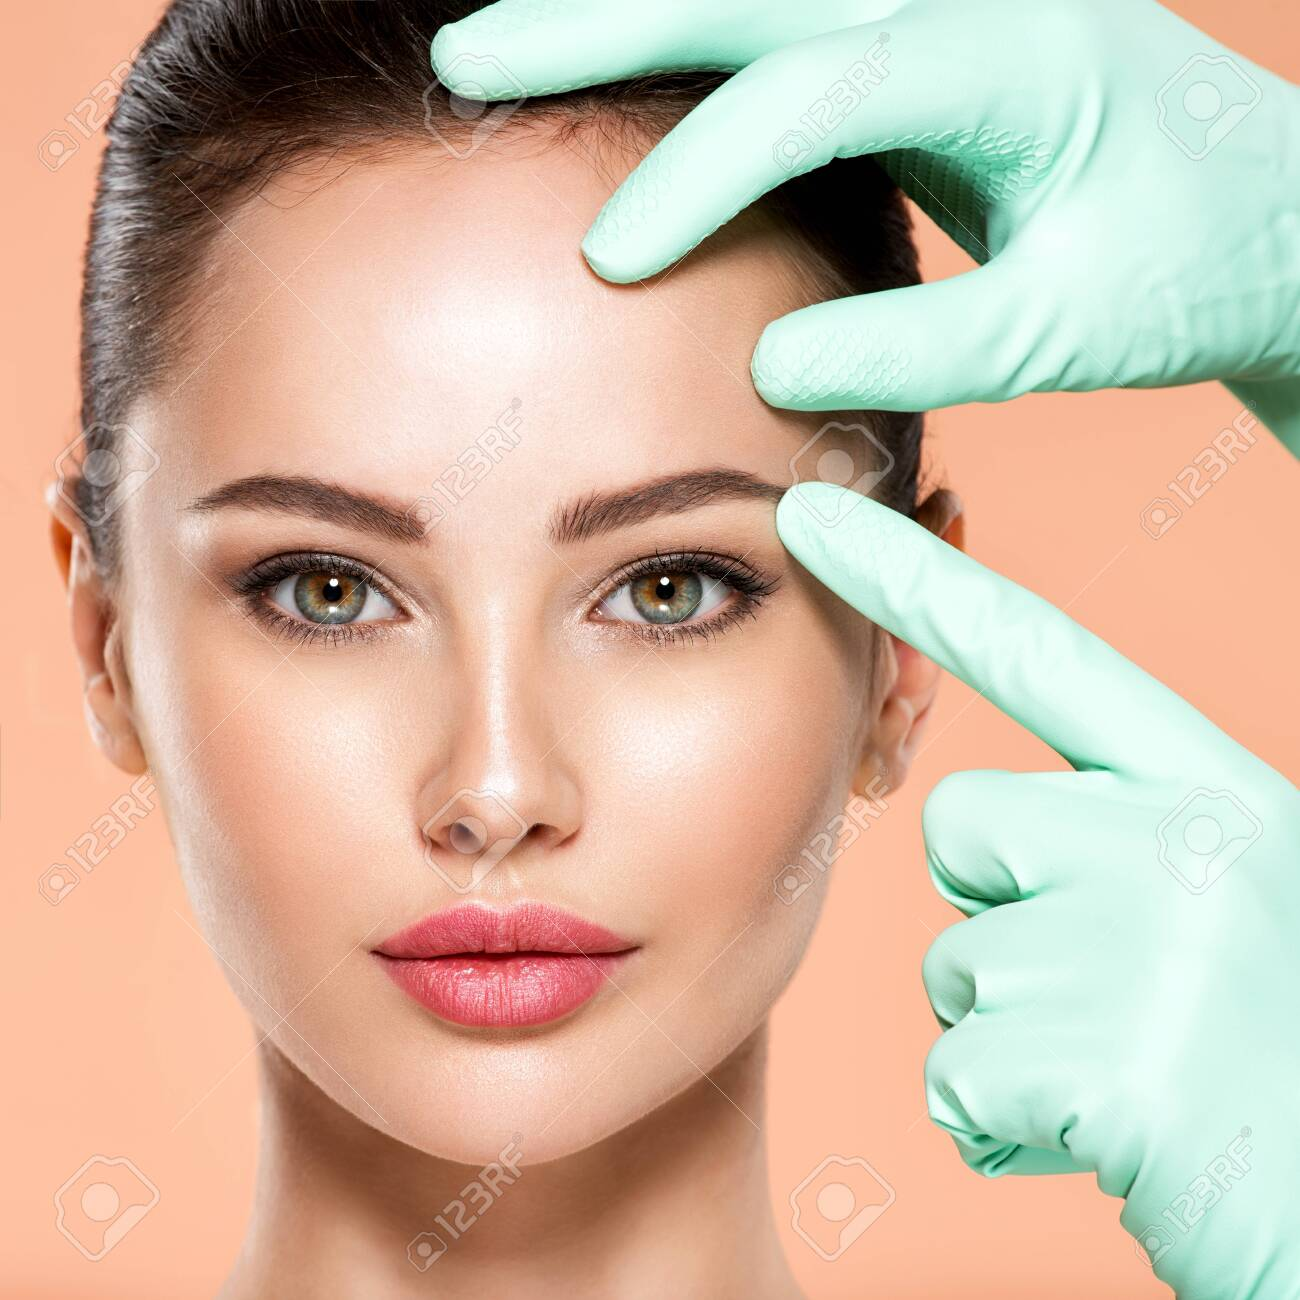 Face skin check before plastic surgery. Beautician touching young woman face. Doctor in medicine gloves checks a skin before plastic surgery. Beauty treatments. Colorful image - 155080021